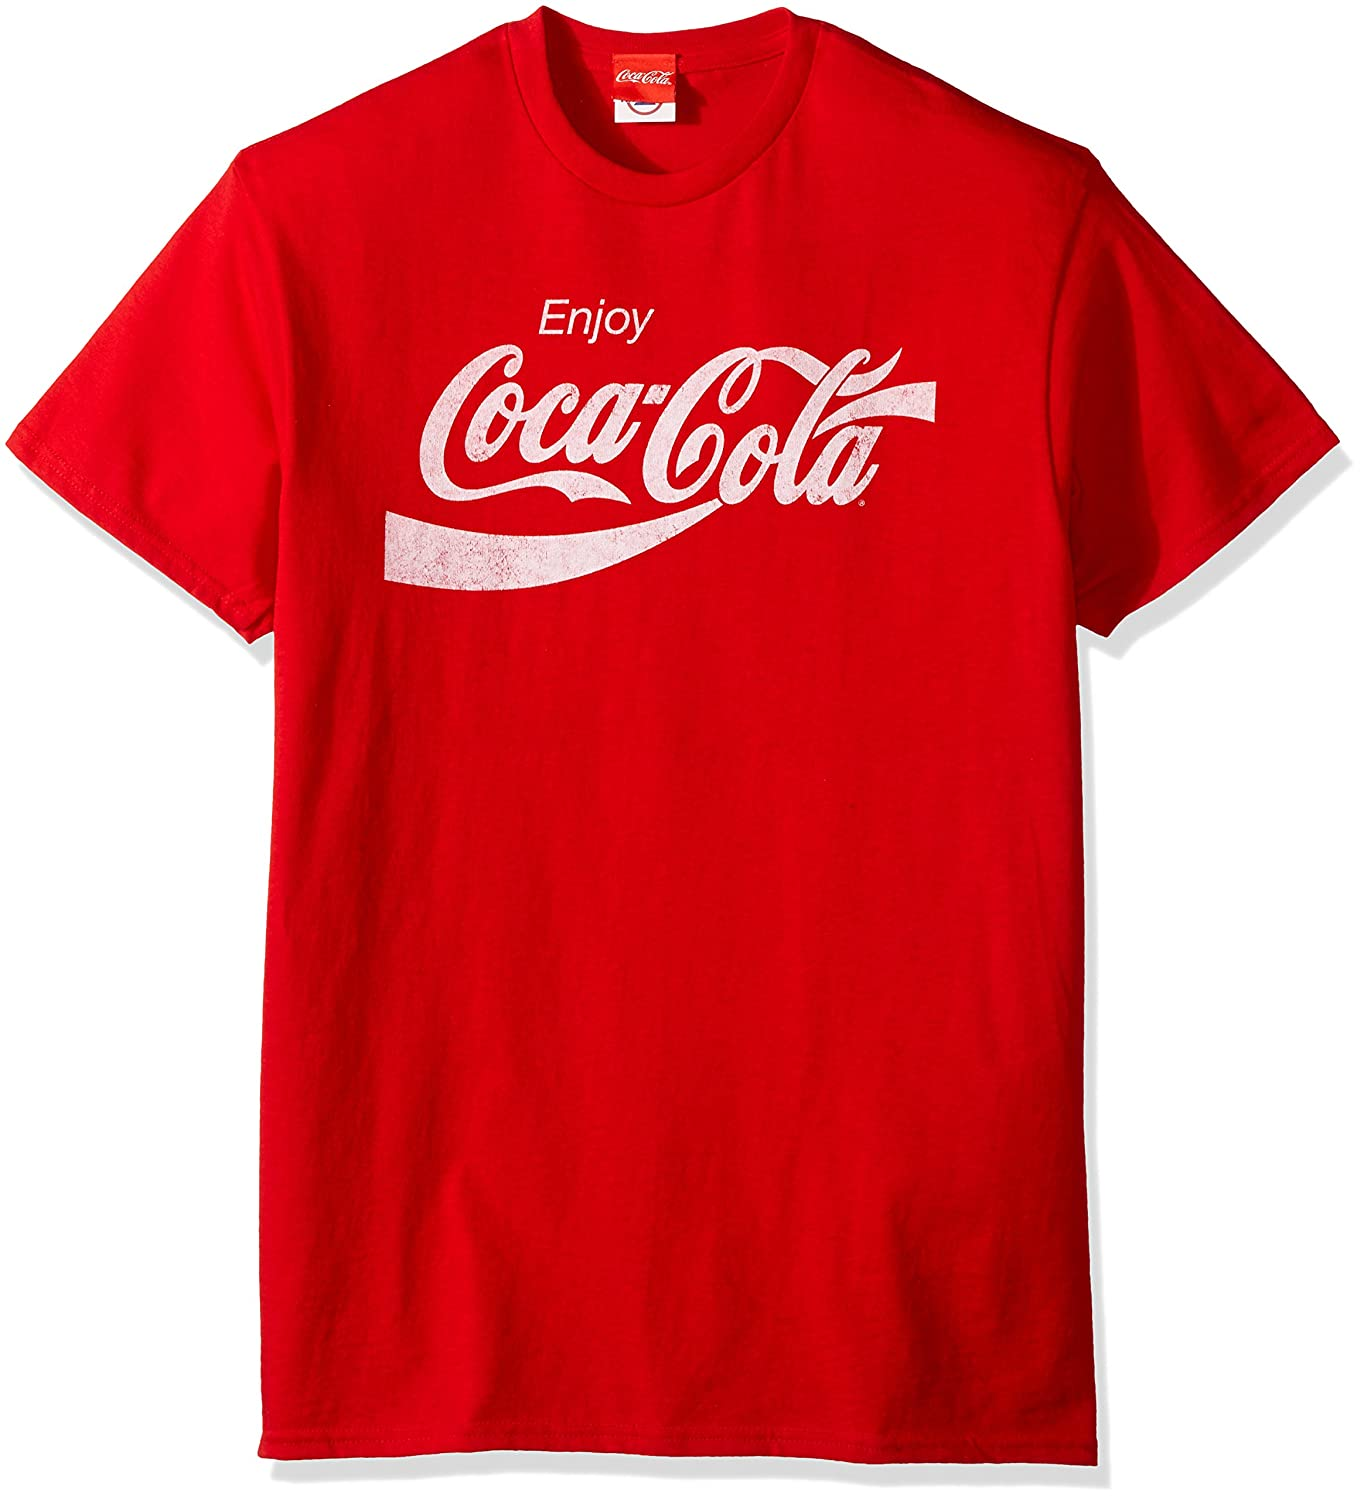 Coca-Cola Coke T-Shirt